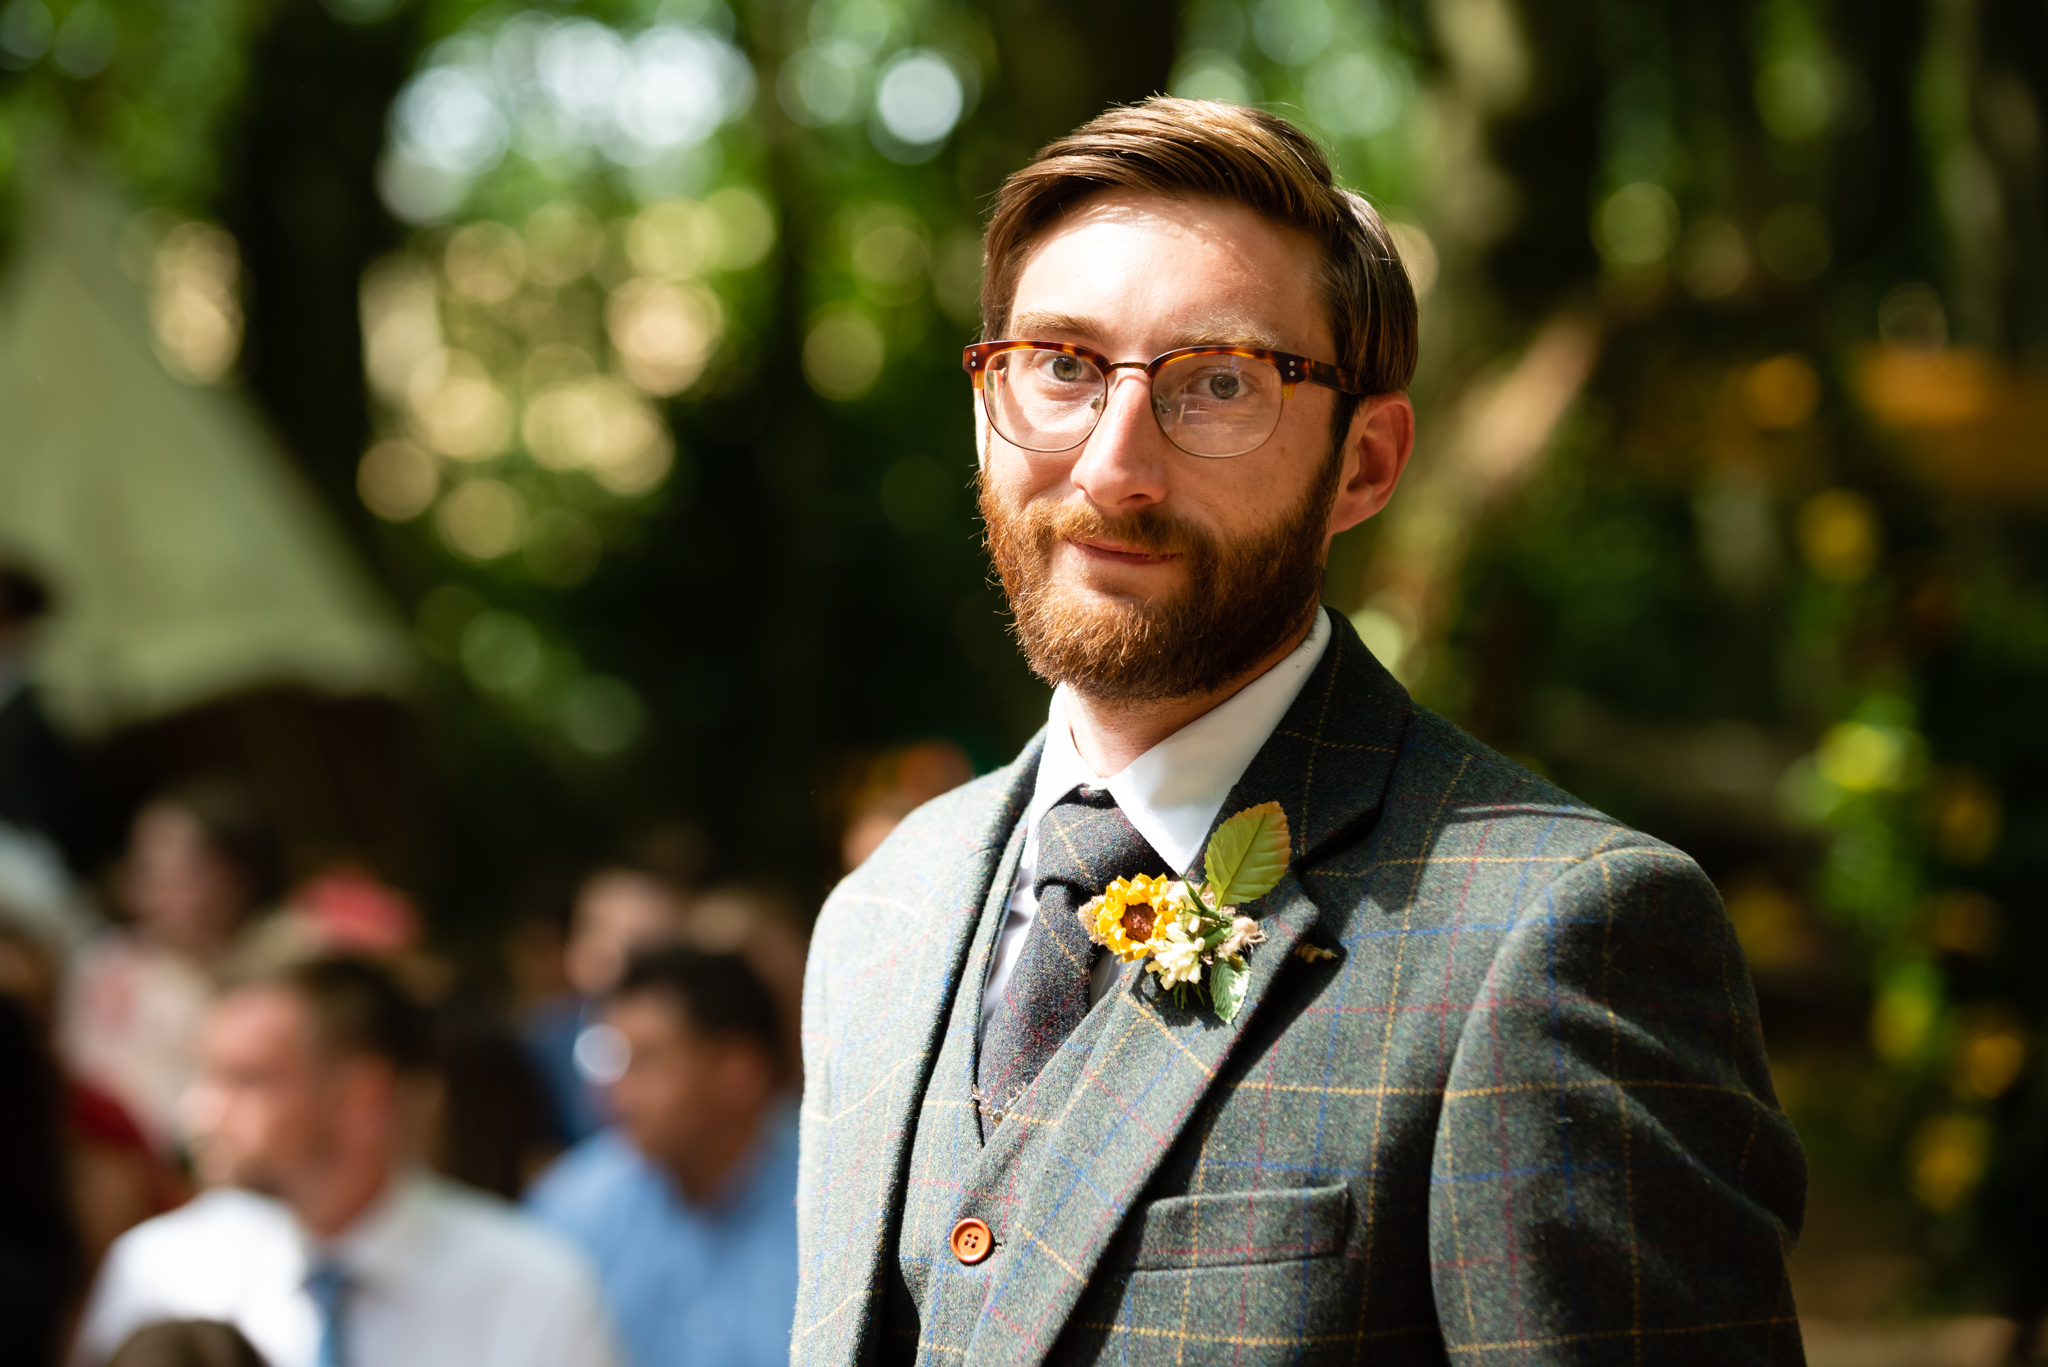 A portrait of the groom before his outdoor wedding